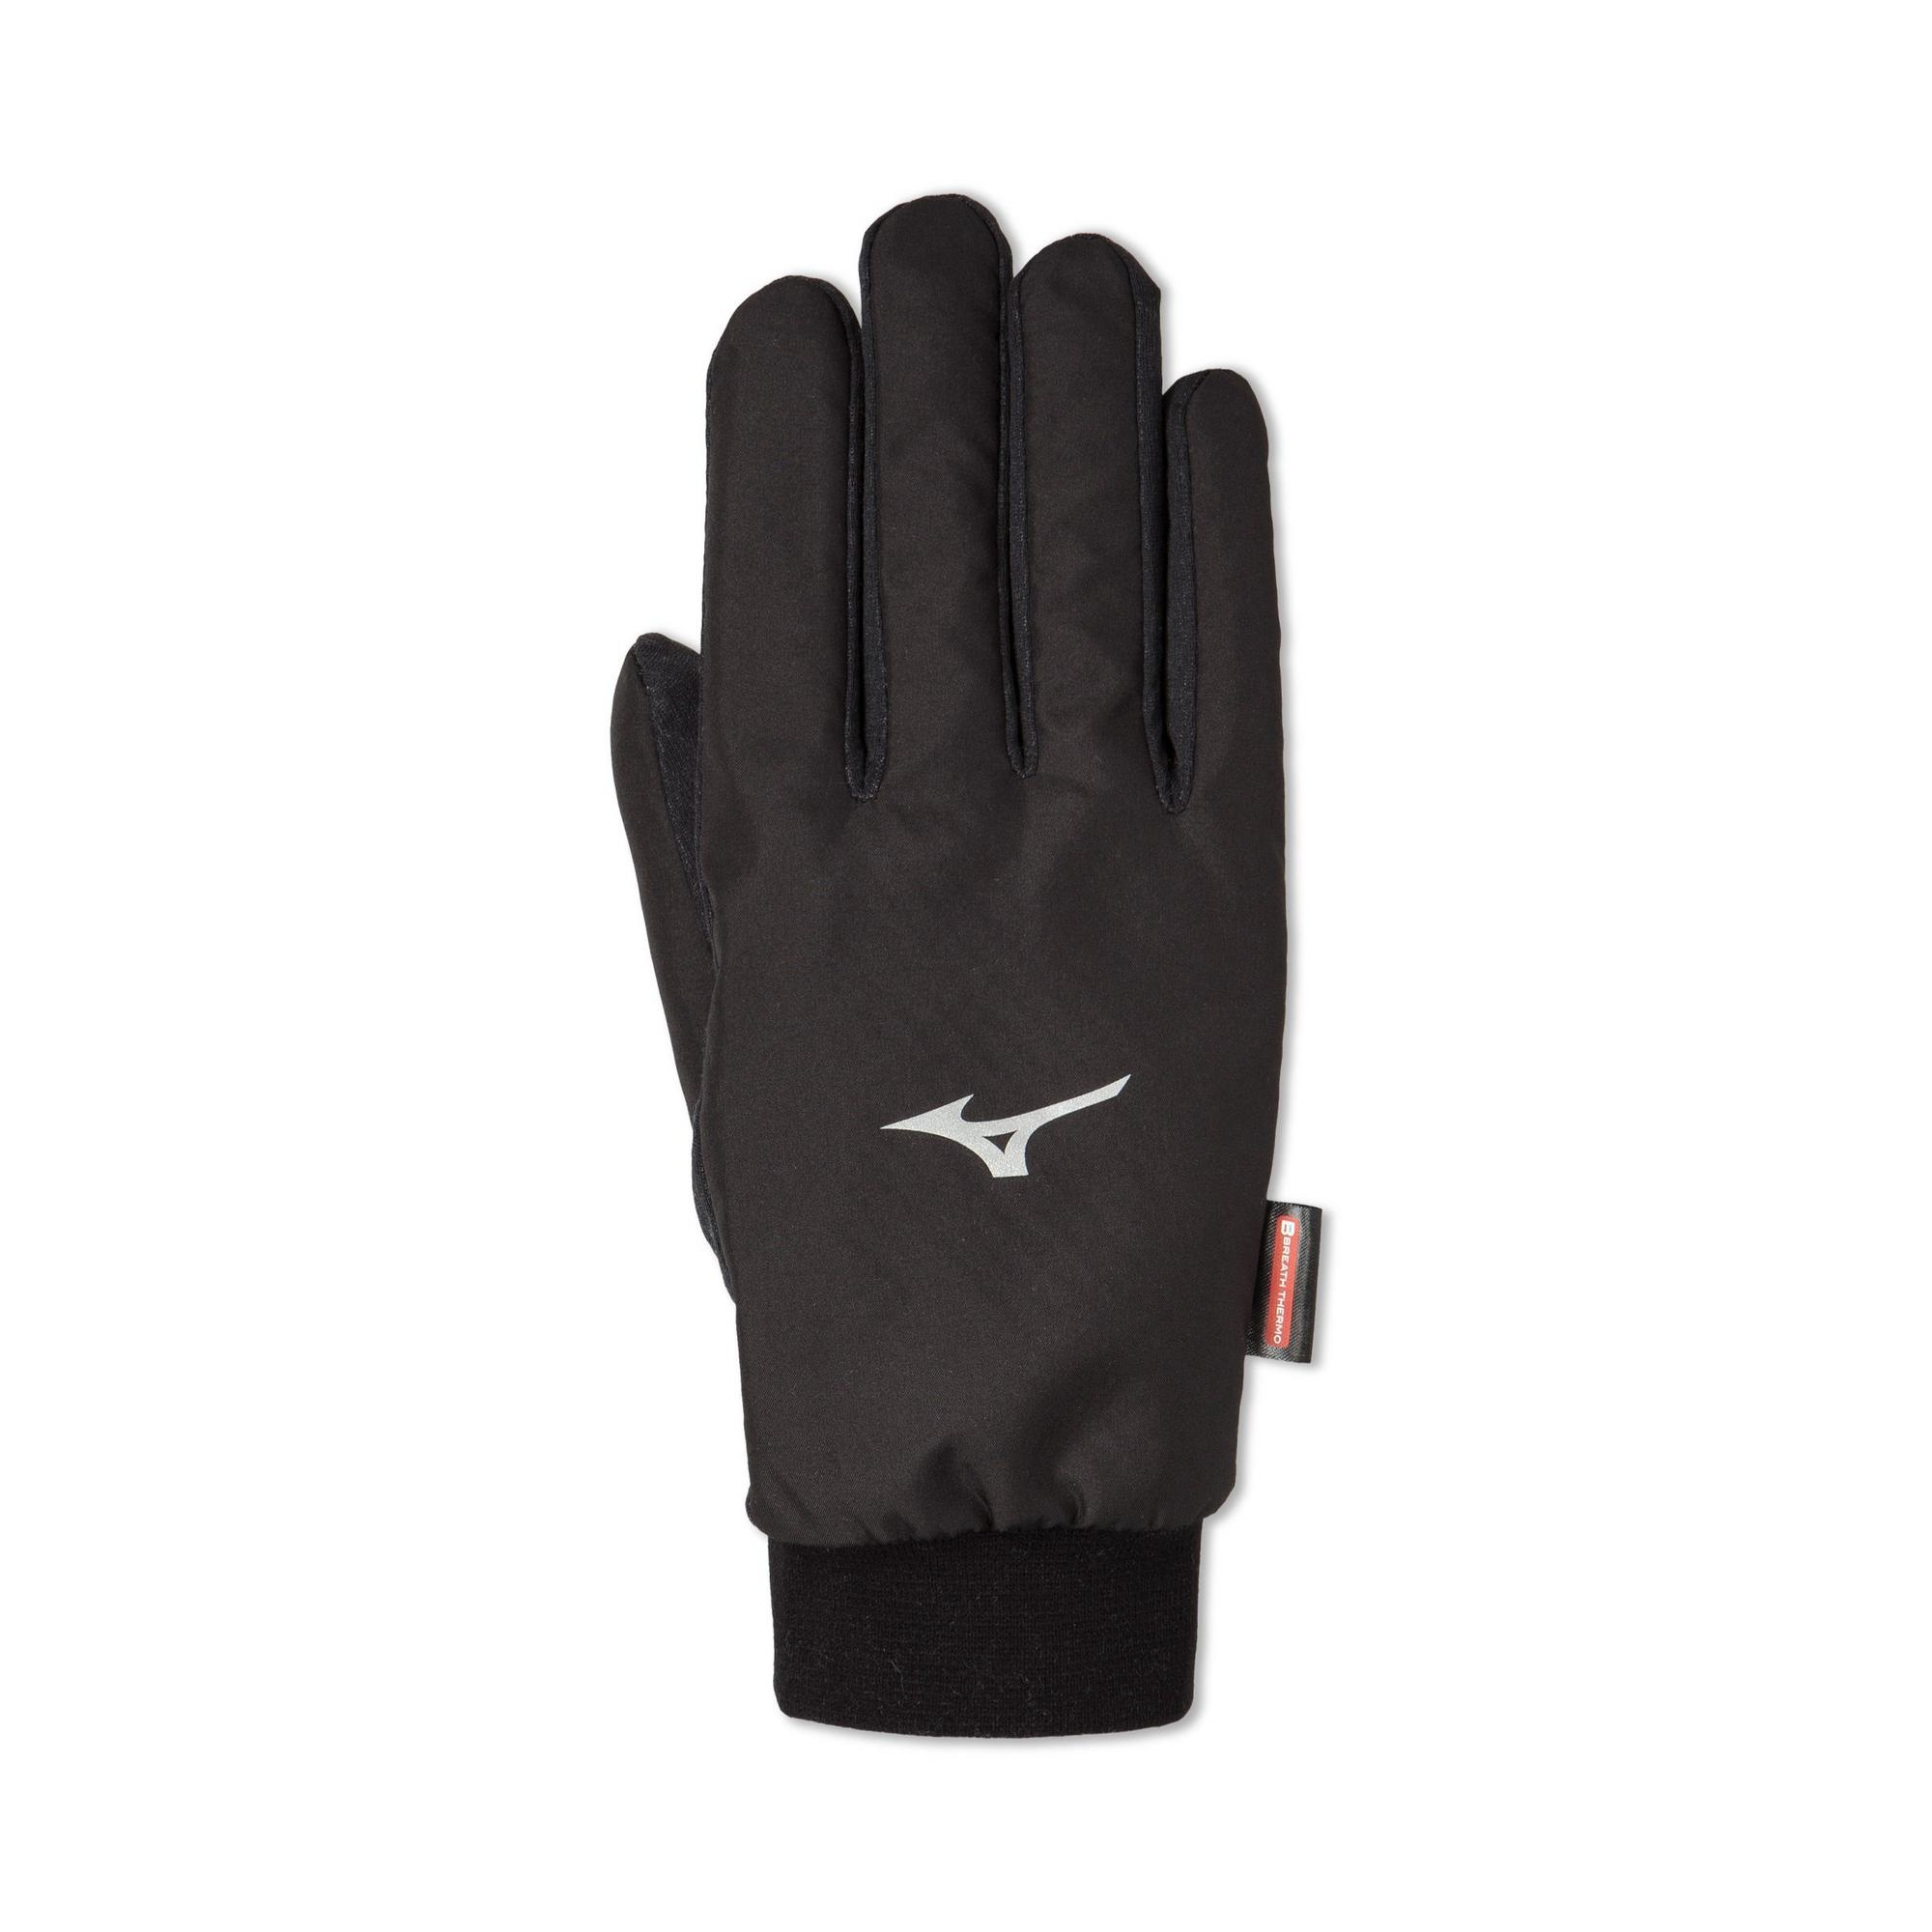 Mizuno Mizuno Breath Thermo Wind Guard Glove, Black